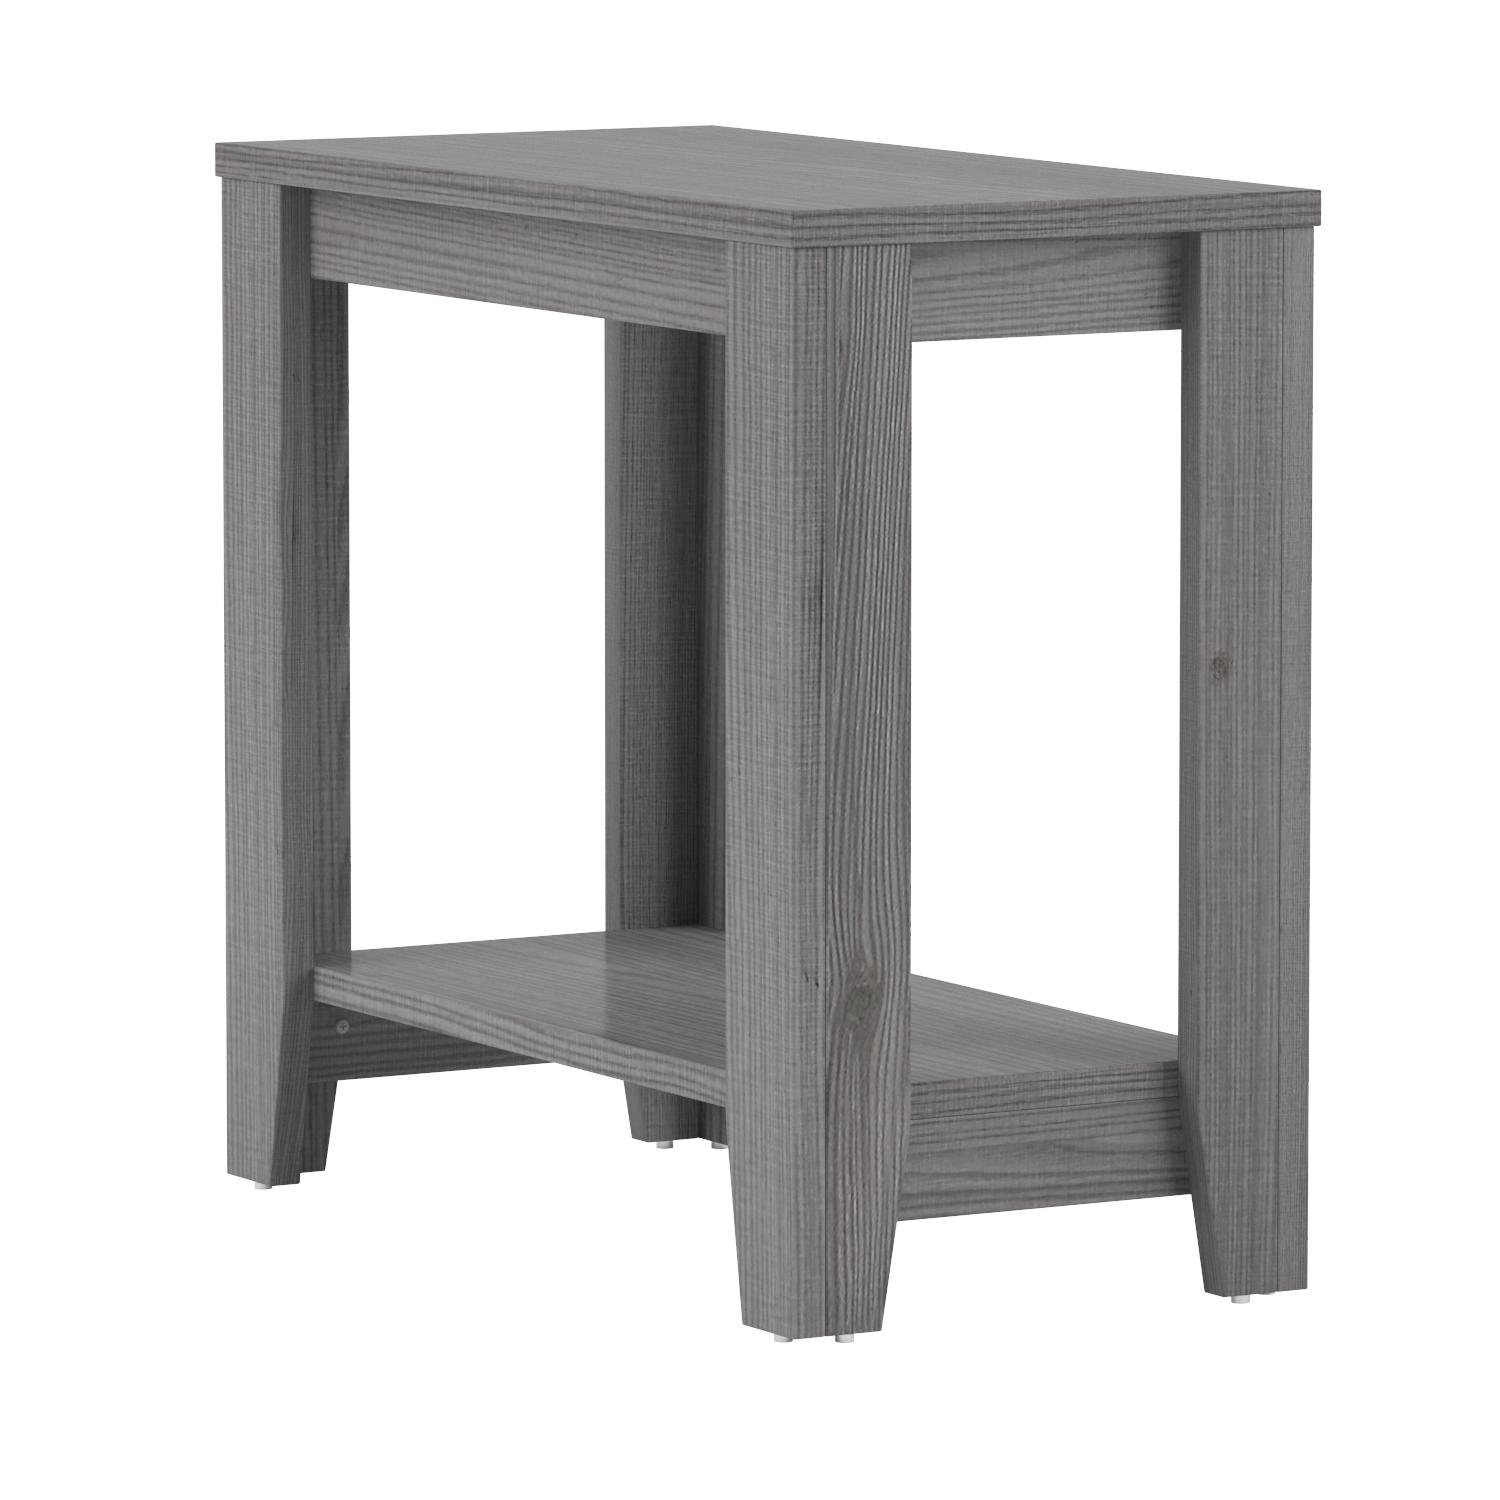 Monarch Accent Table, Grey